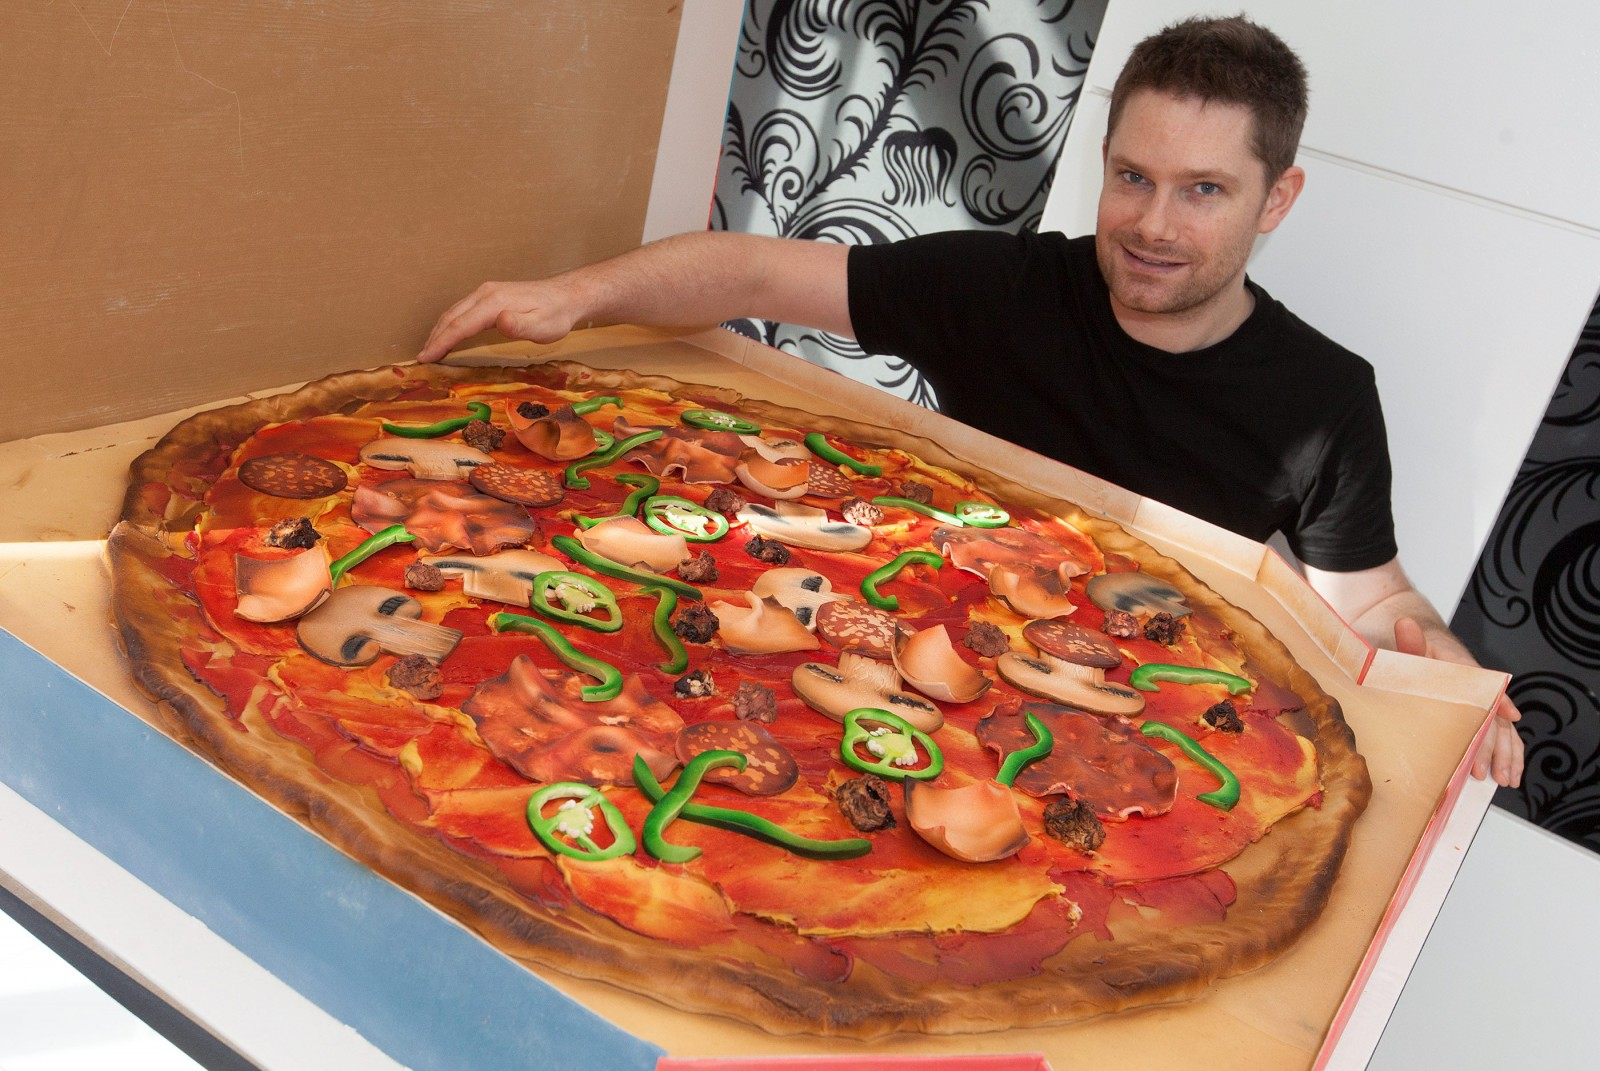 This GIANT pizza isn't quite what it seems…